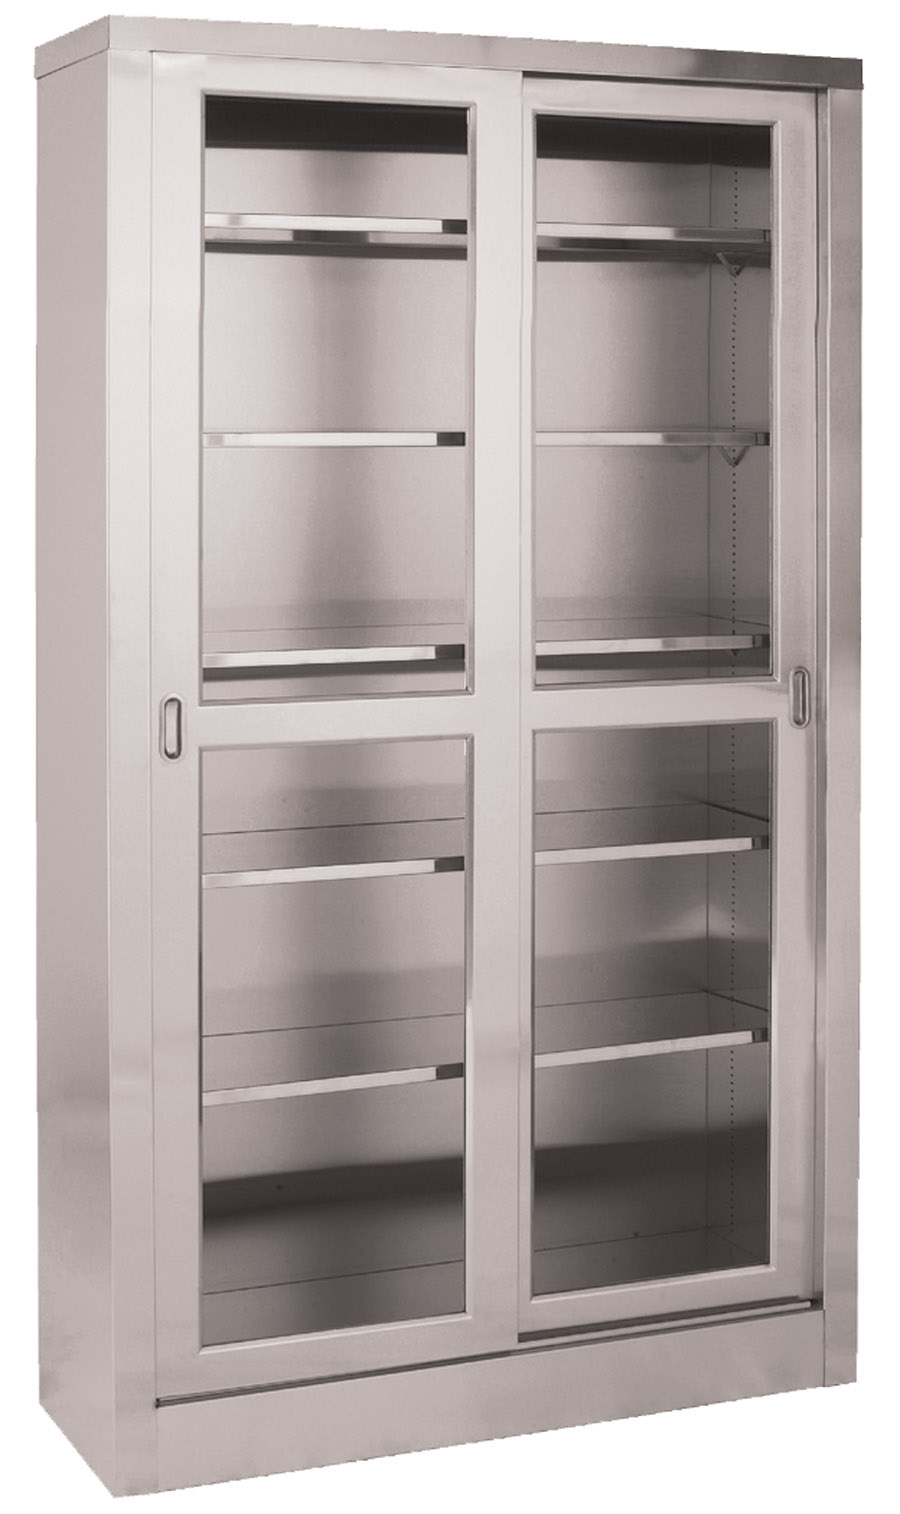 Stainless Steel Storage Cabinet With Glass Doors